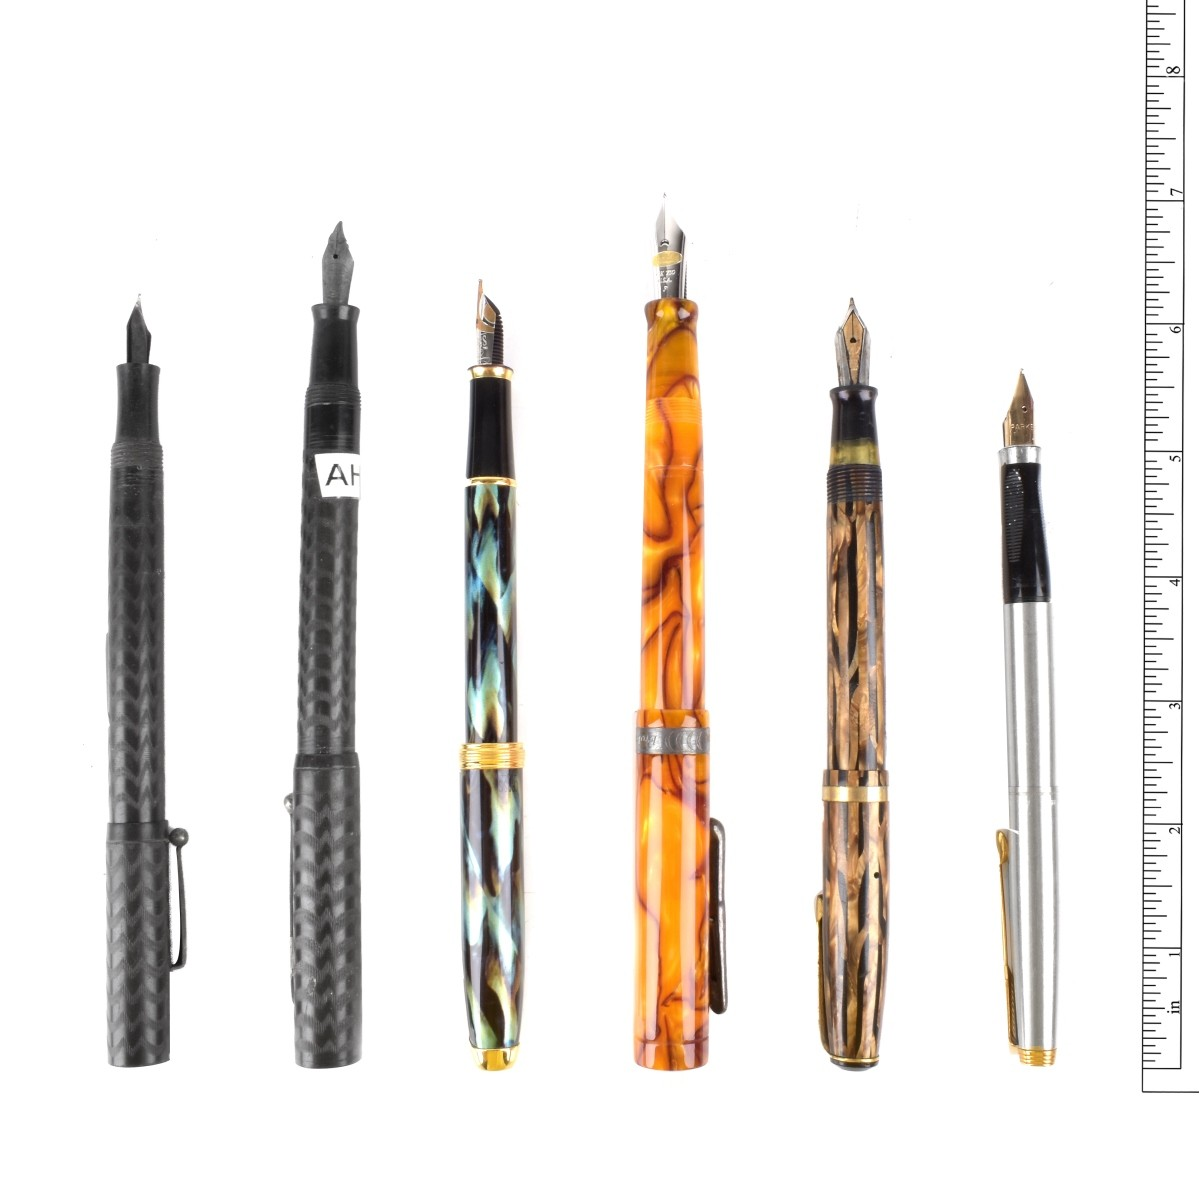 Six Fountain Pens